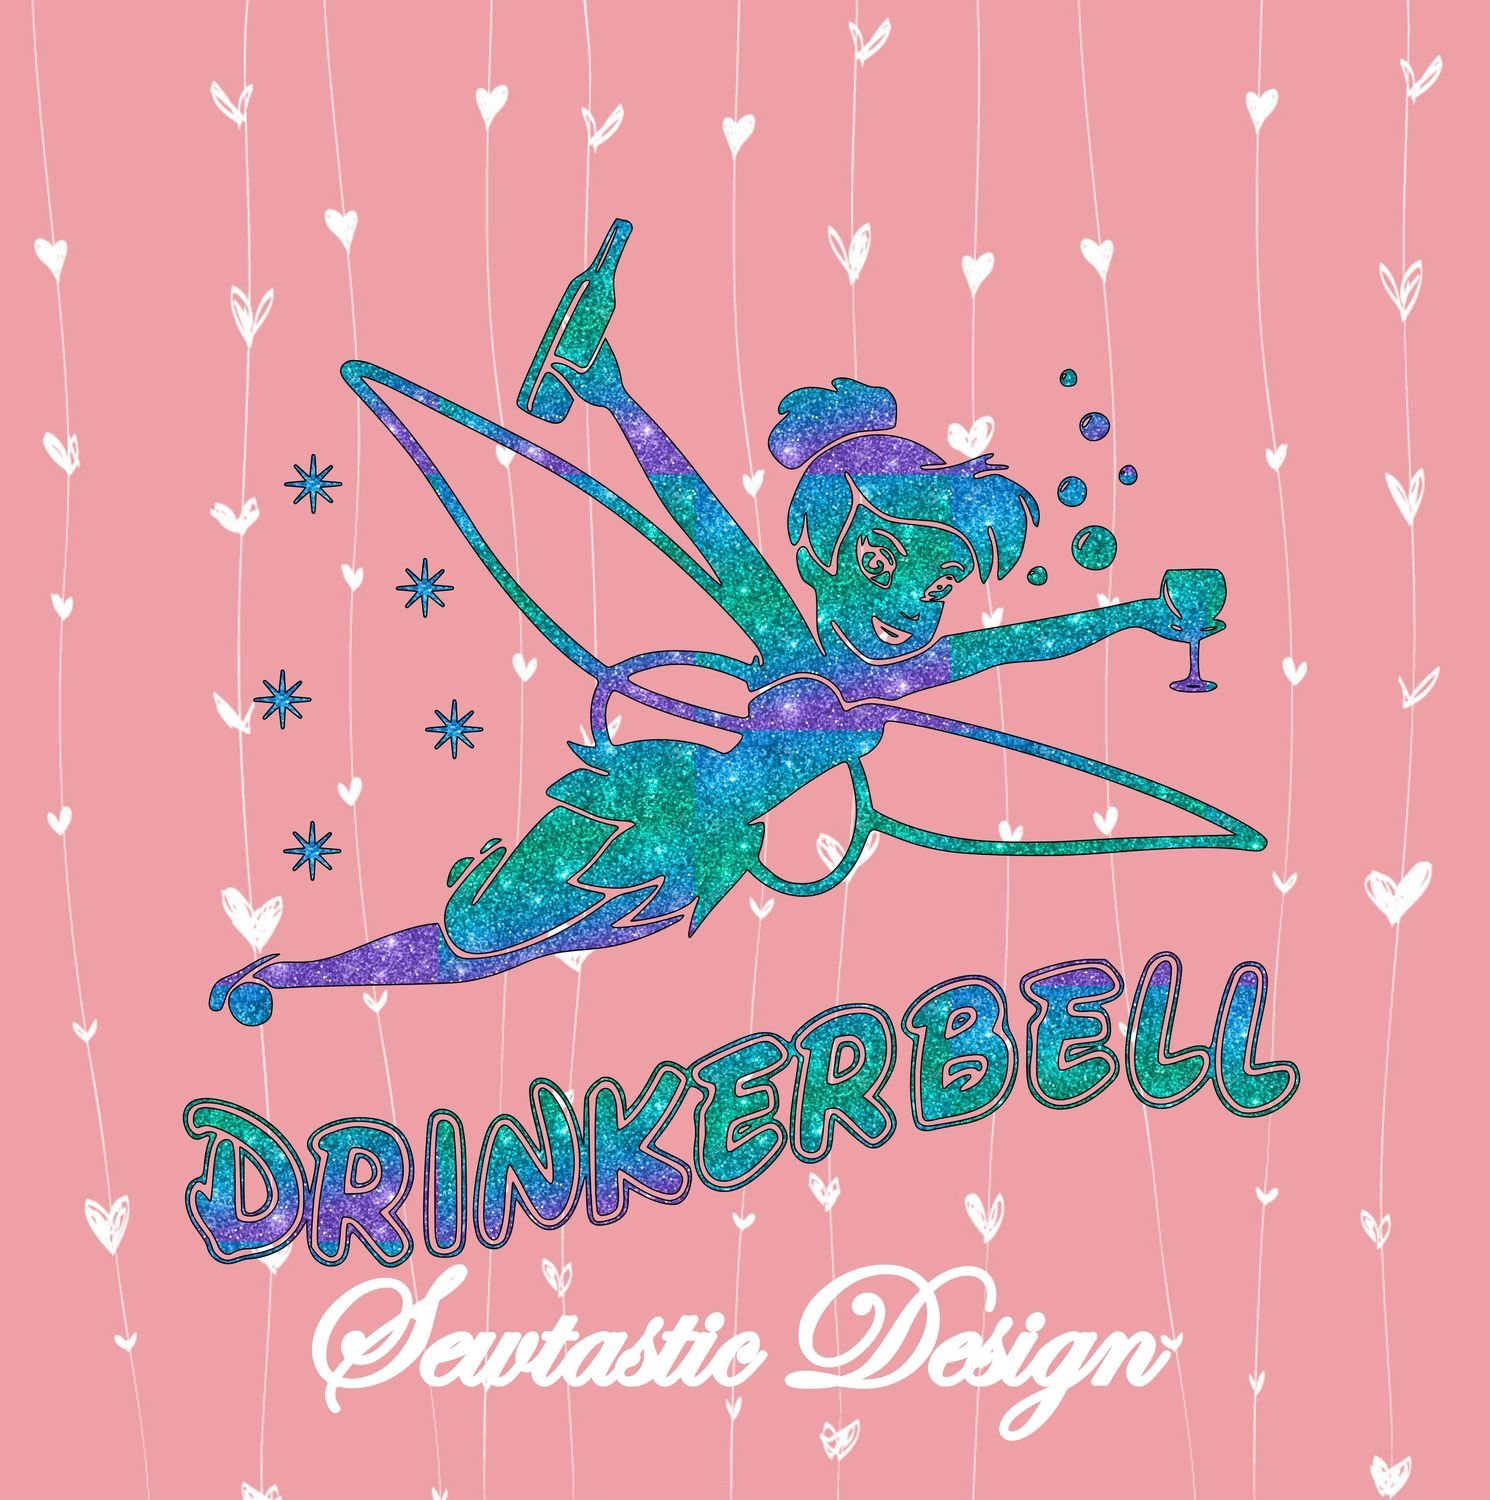 Drinkerbell clipart image free library DrinkerBell SVG, Drinker Bell SVG, Tinkerbell SVG, Disney SVG, Cut File,  Iron On, Decal, Cricut, Silhouette, ScanNCut & Many More image free library